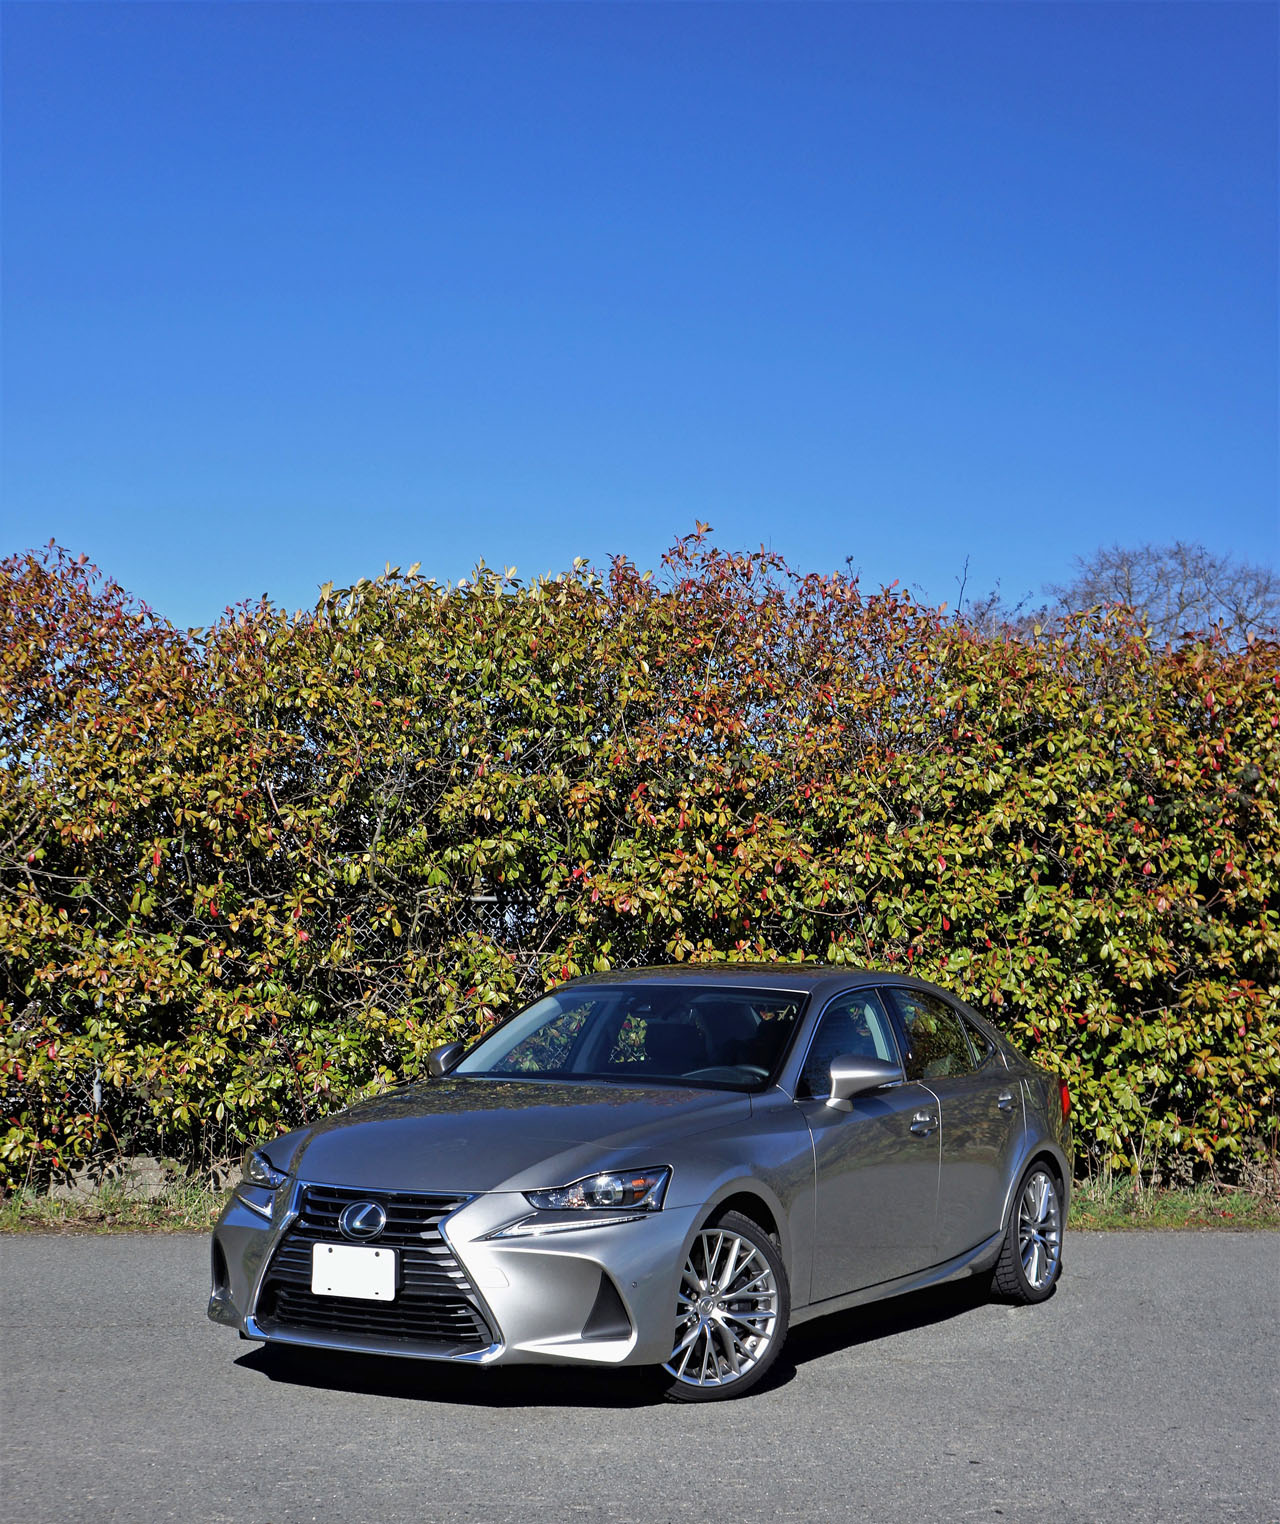 2018 Lexus IS 300 AWD Road Test Review